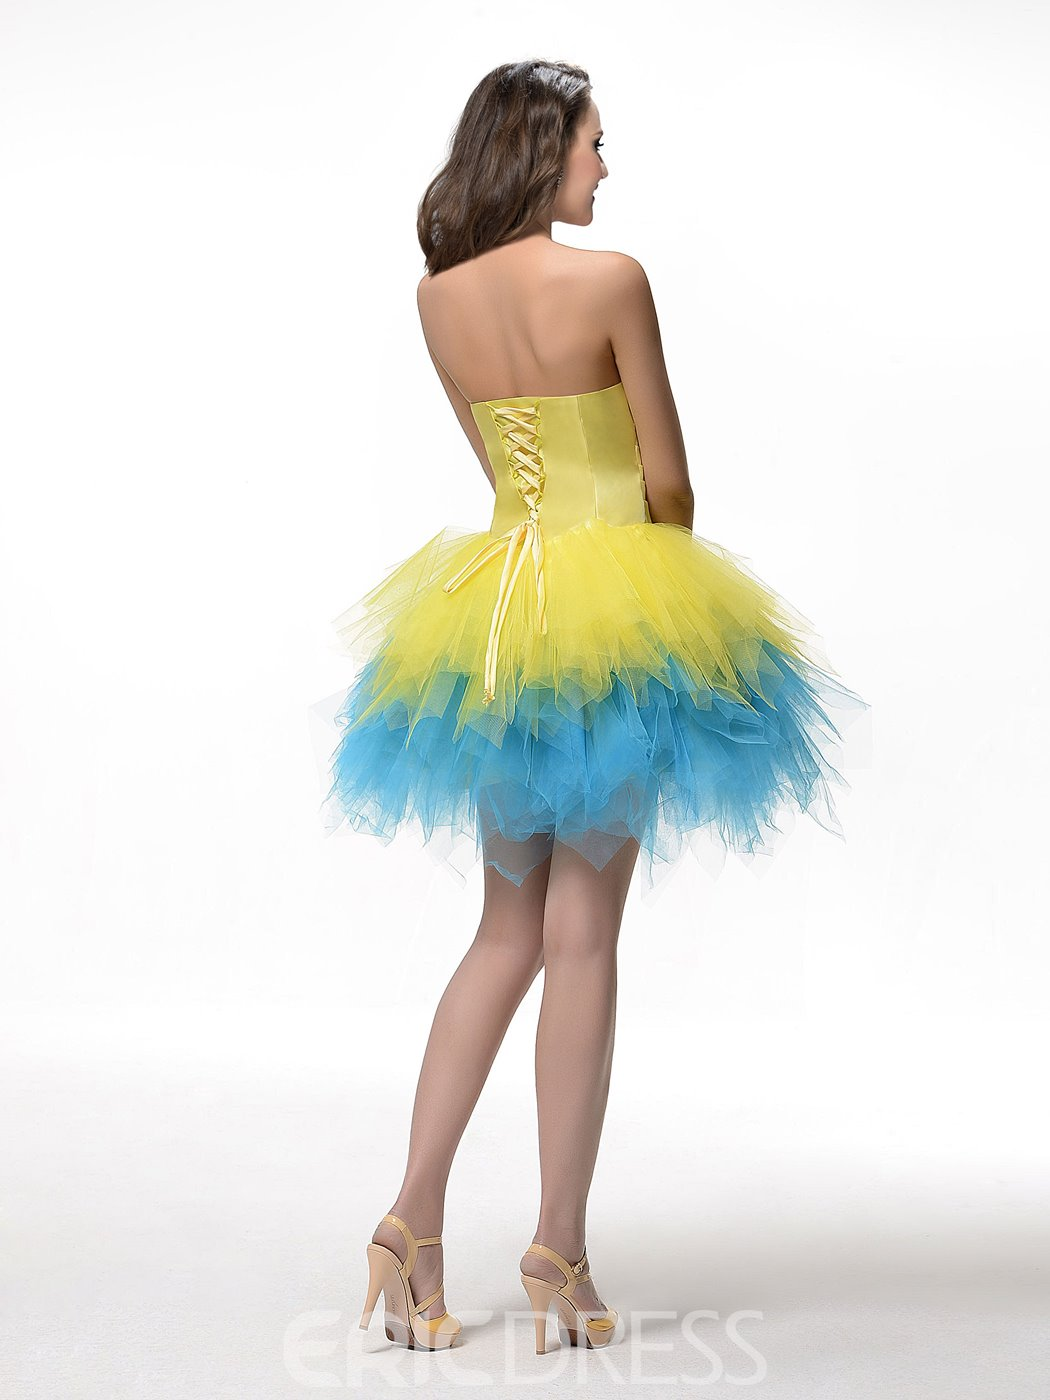 Comely Strapless A-Line Pleats Short Charming Homecoming Dress